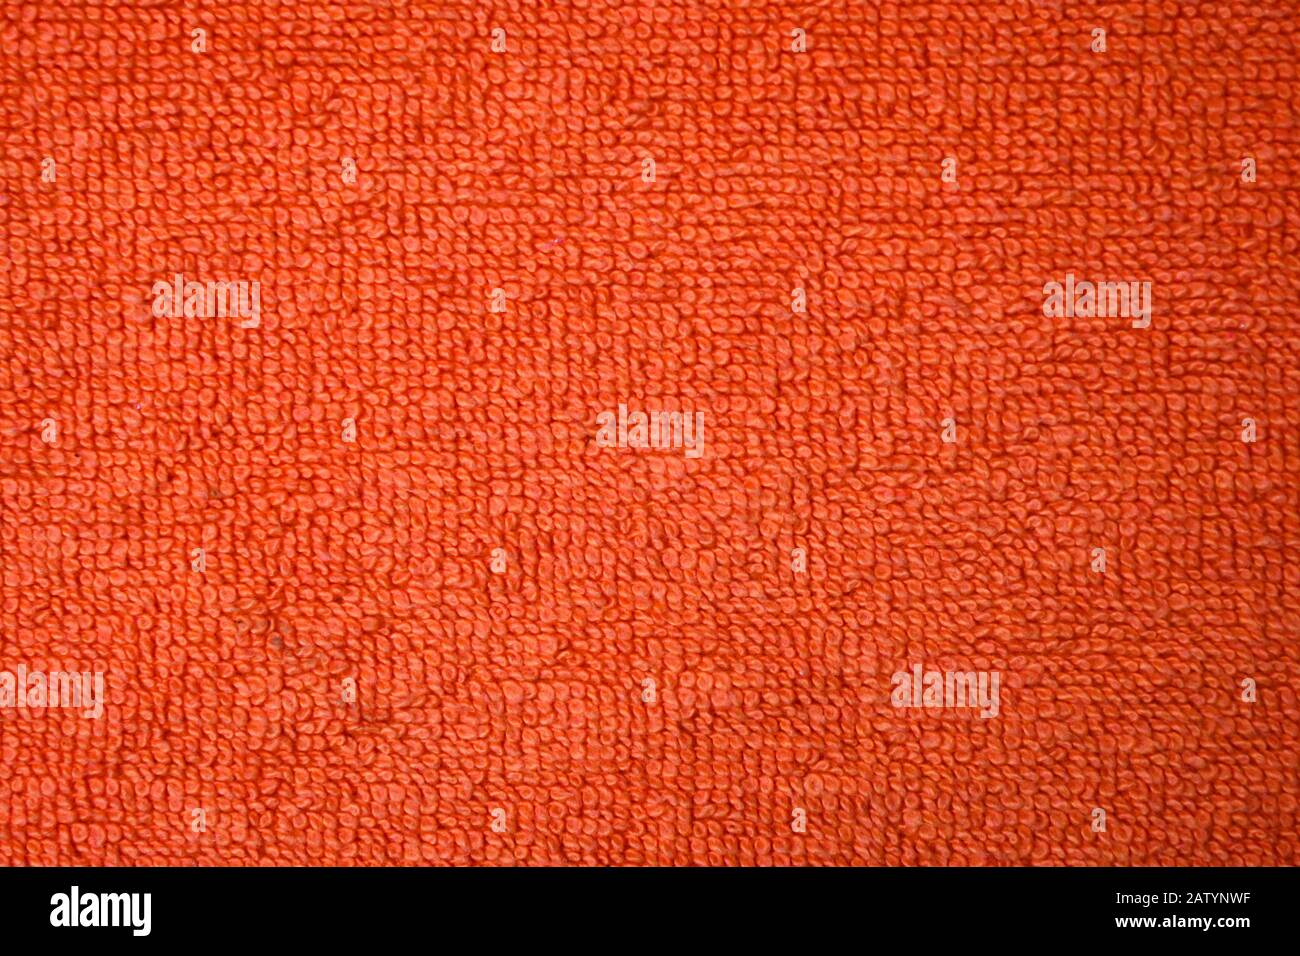 A Beautiful Orange Natural Cotton Towel Background Closeup Of The Grapefruit Colored Soft Fiber Texture Amazing Macro Of The Wonderful Surface Stock Photo Alamy